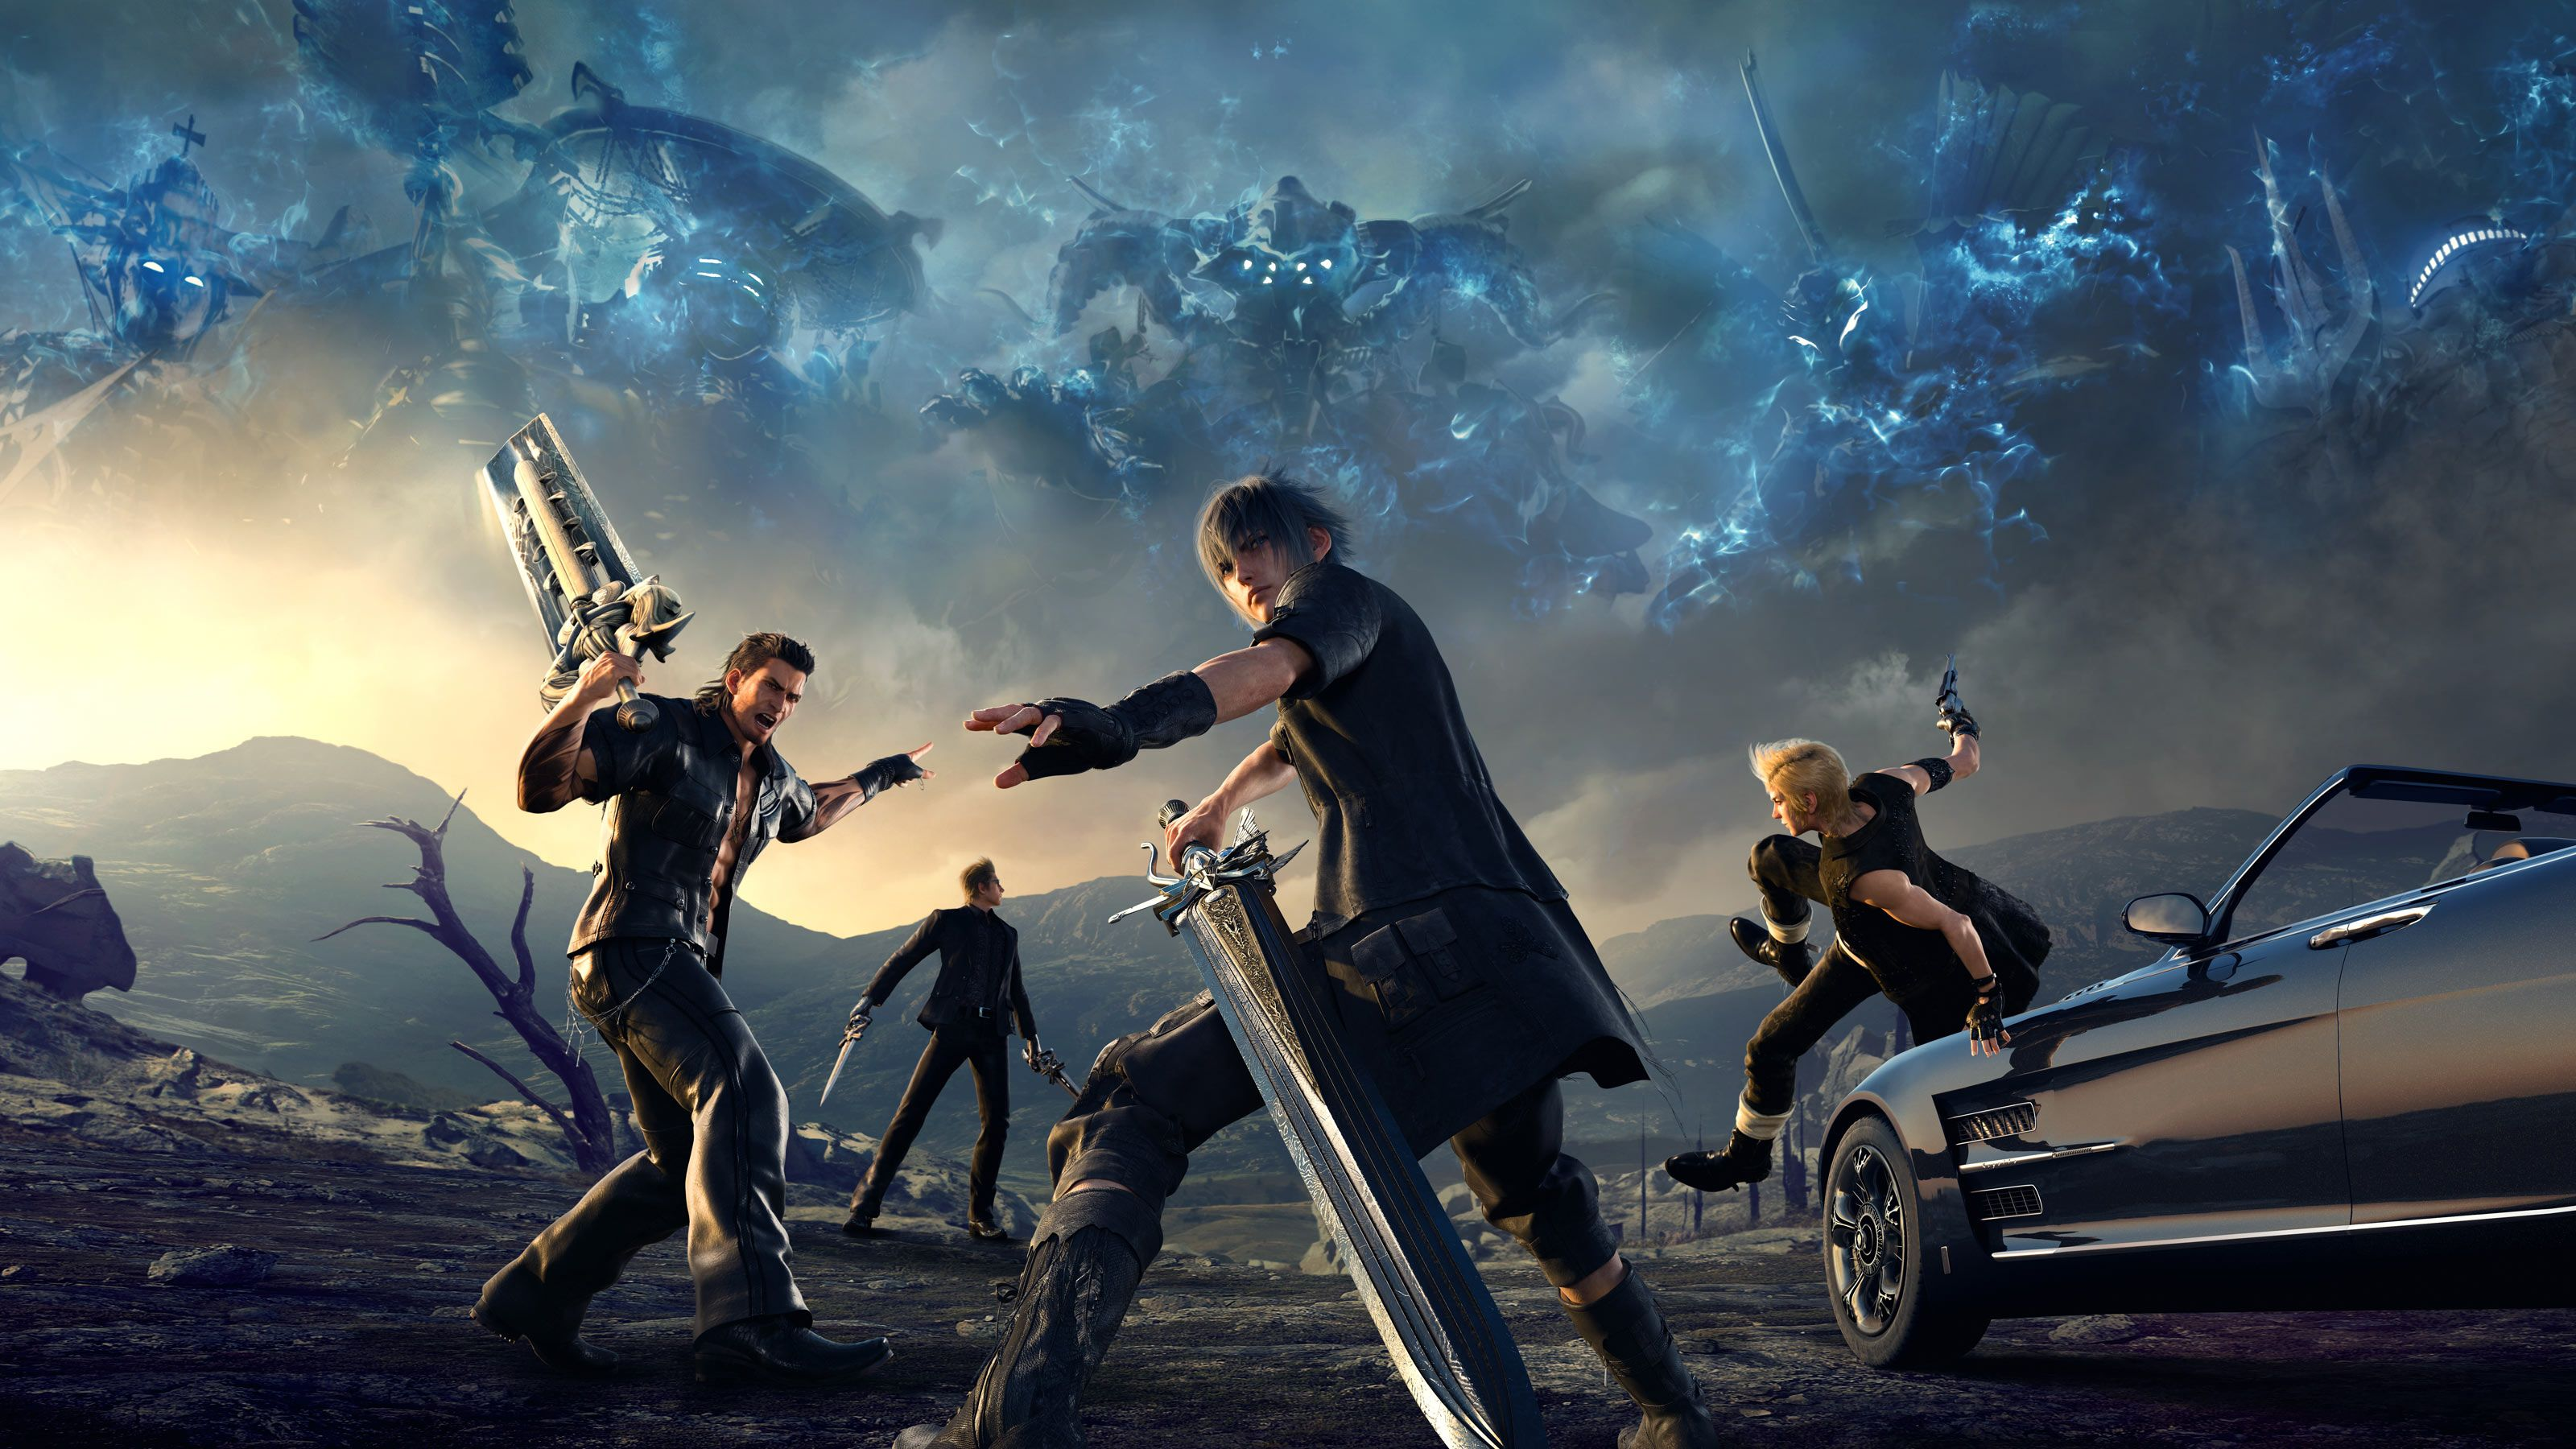 Final Fantasy Xv Coming To Mobile And Pc Https Www Gizorama Com 2017 News Final Fantasy Xv Co Final Fantasy Xv Wallpapers Final Fantasy Xv Final Fantasy 15